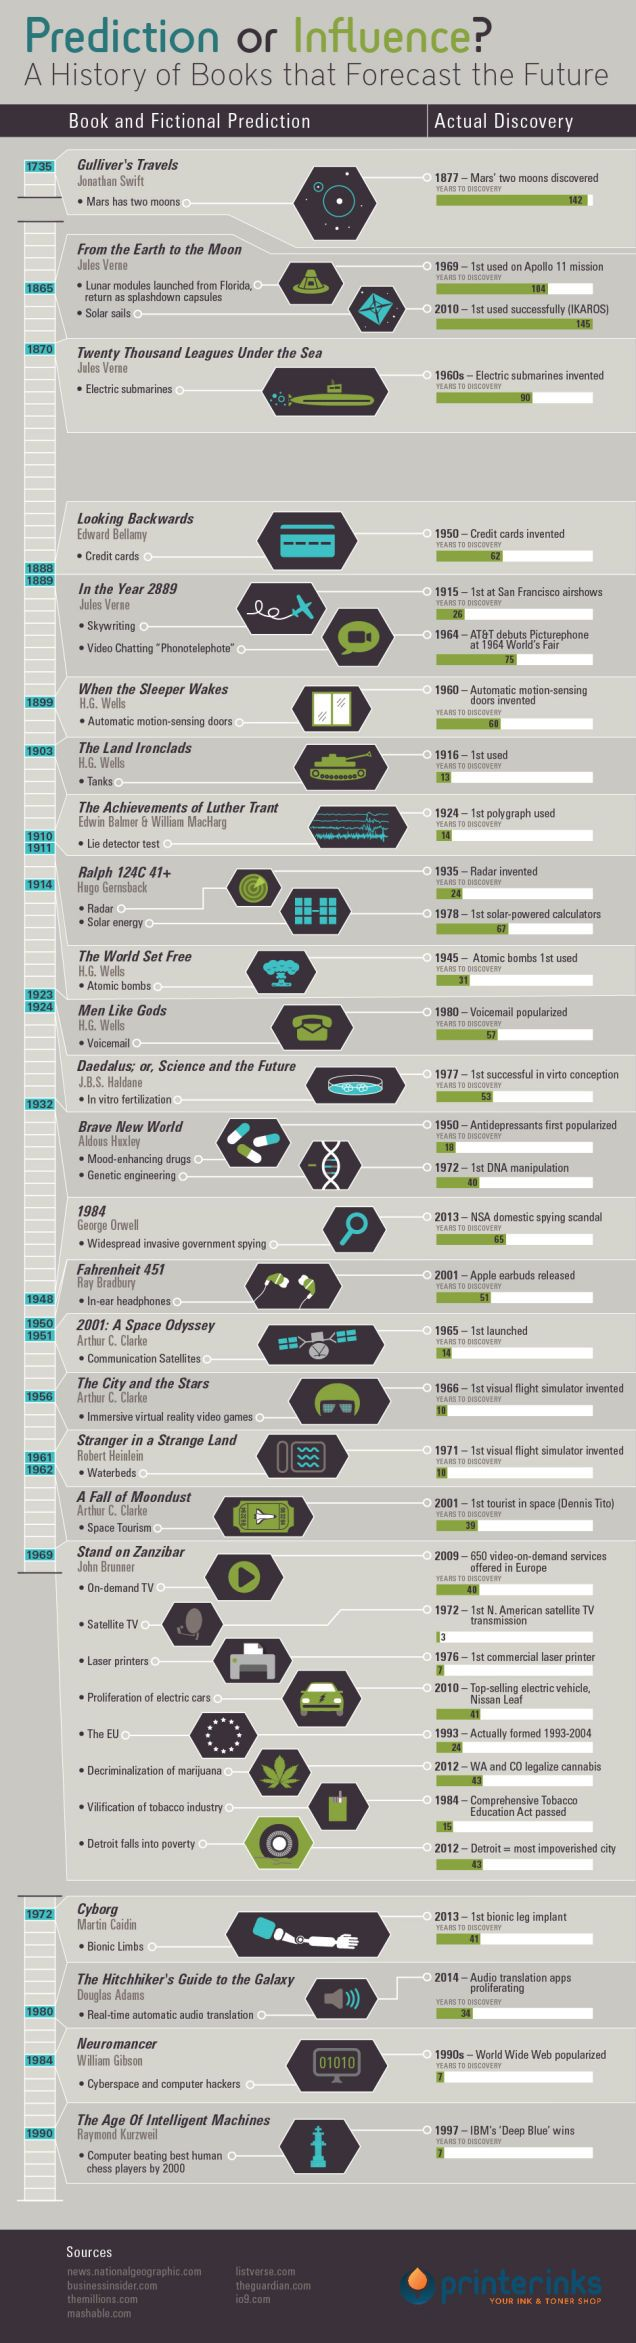 Great presentation! All The Times Science Fiction Became Science Fact In One Chart. #sciencefiction #infographic #sciencefact